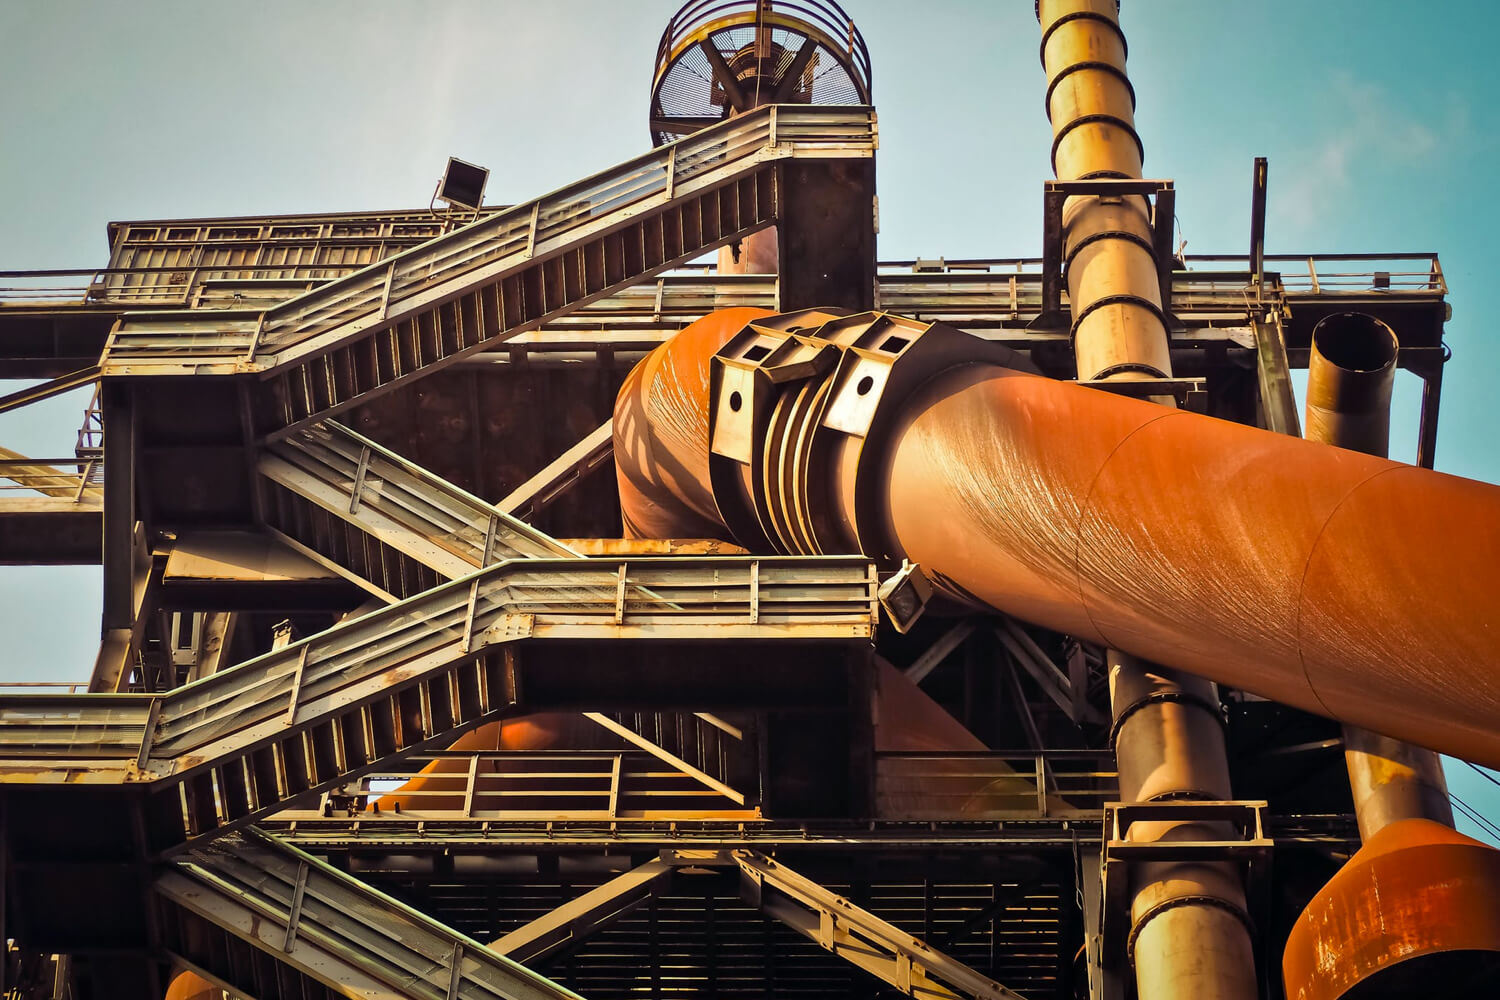 Industrial Email Marketing for Technical Professionals